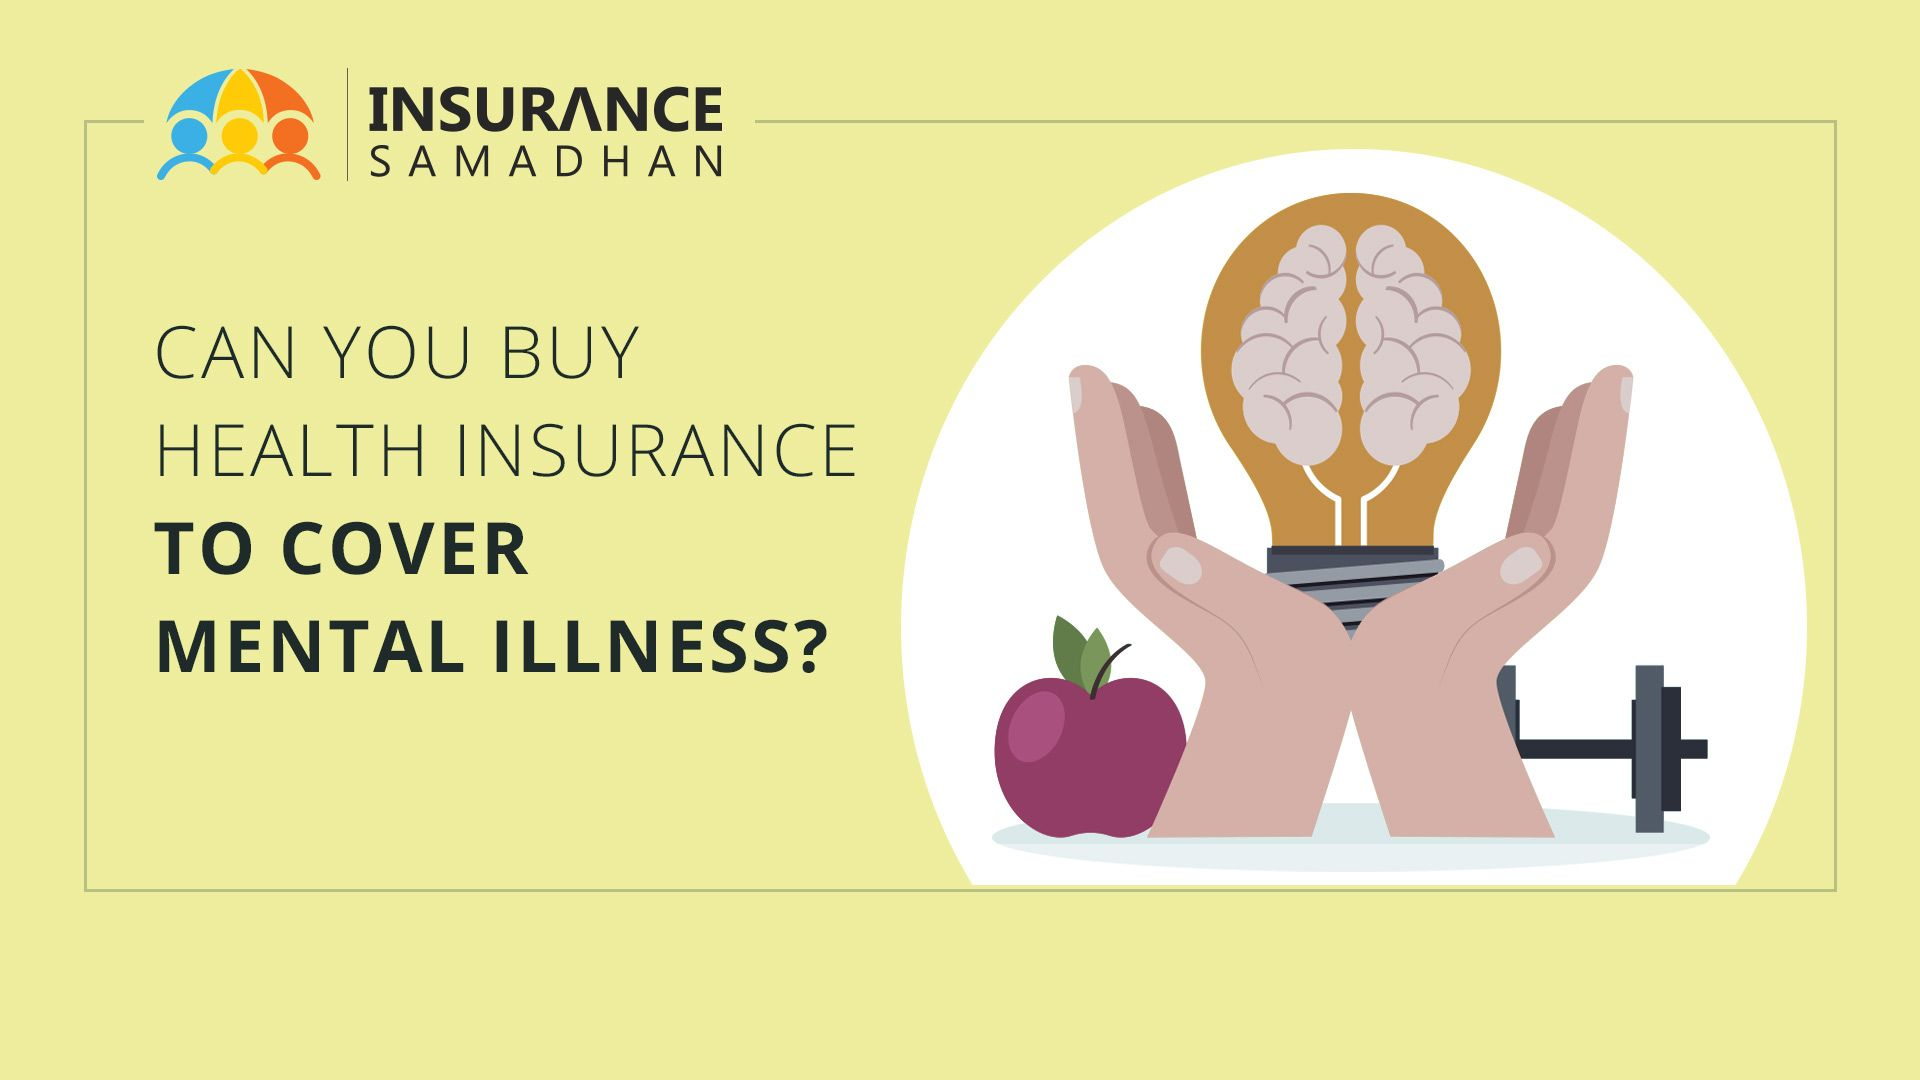 Can we buy health insurance cover for mental illnesses?